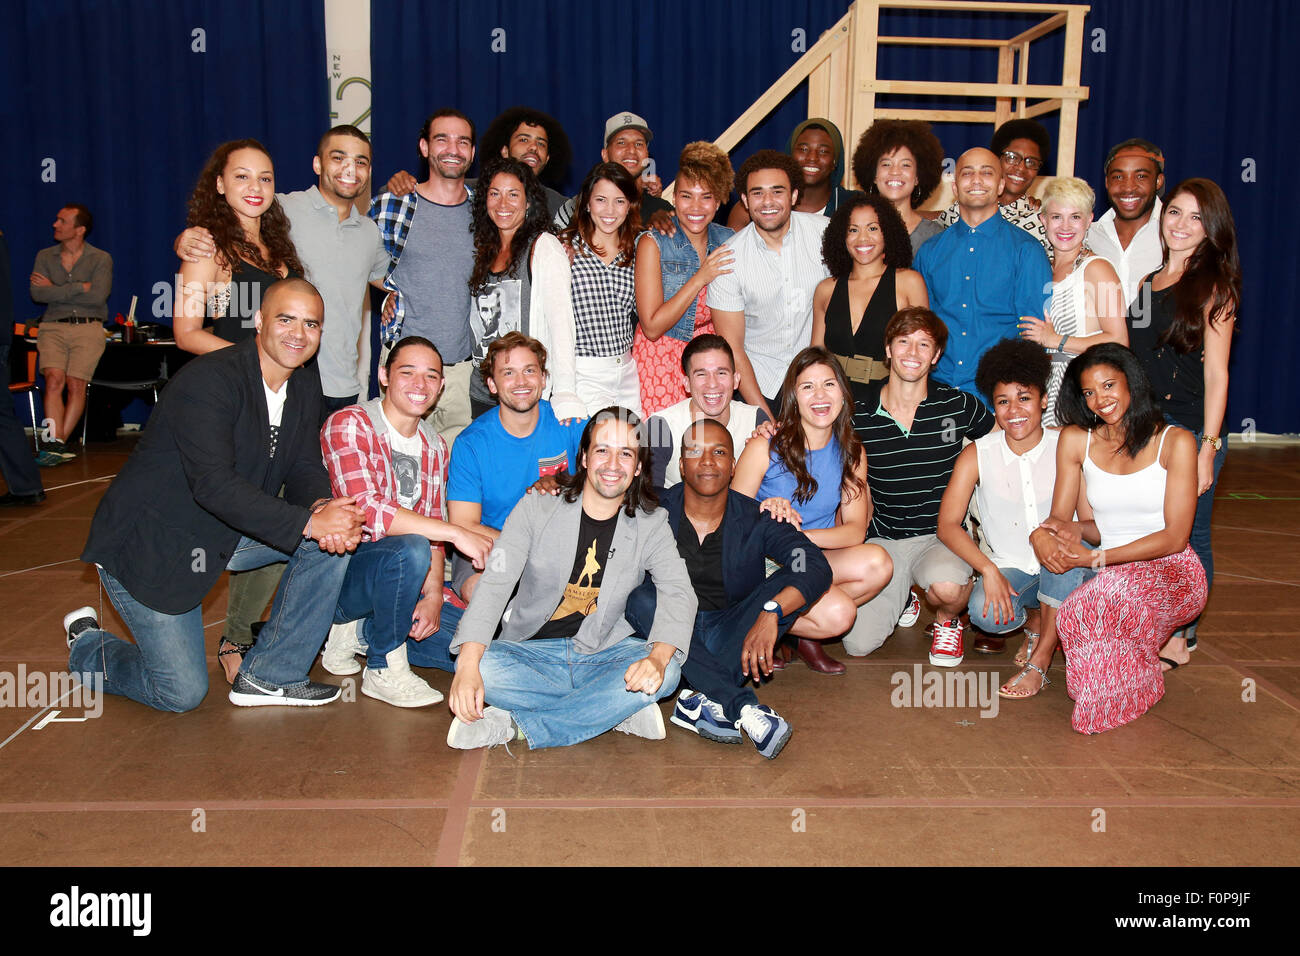 Photocall for Broadway musical 'Hamilton' held at New 42nd Street Studios.  Featuring: cast Where: New York - Stock Image